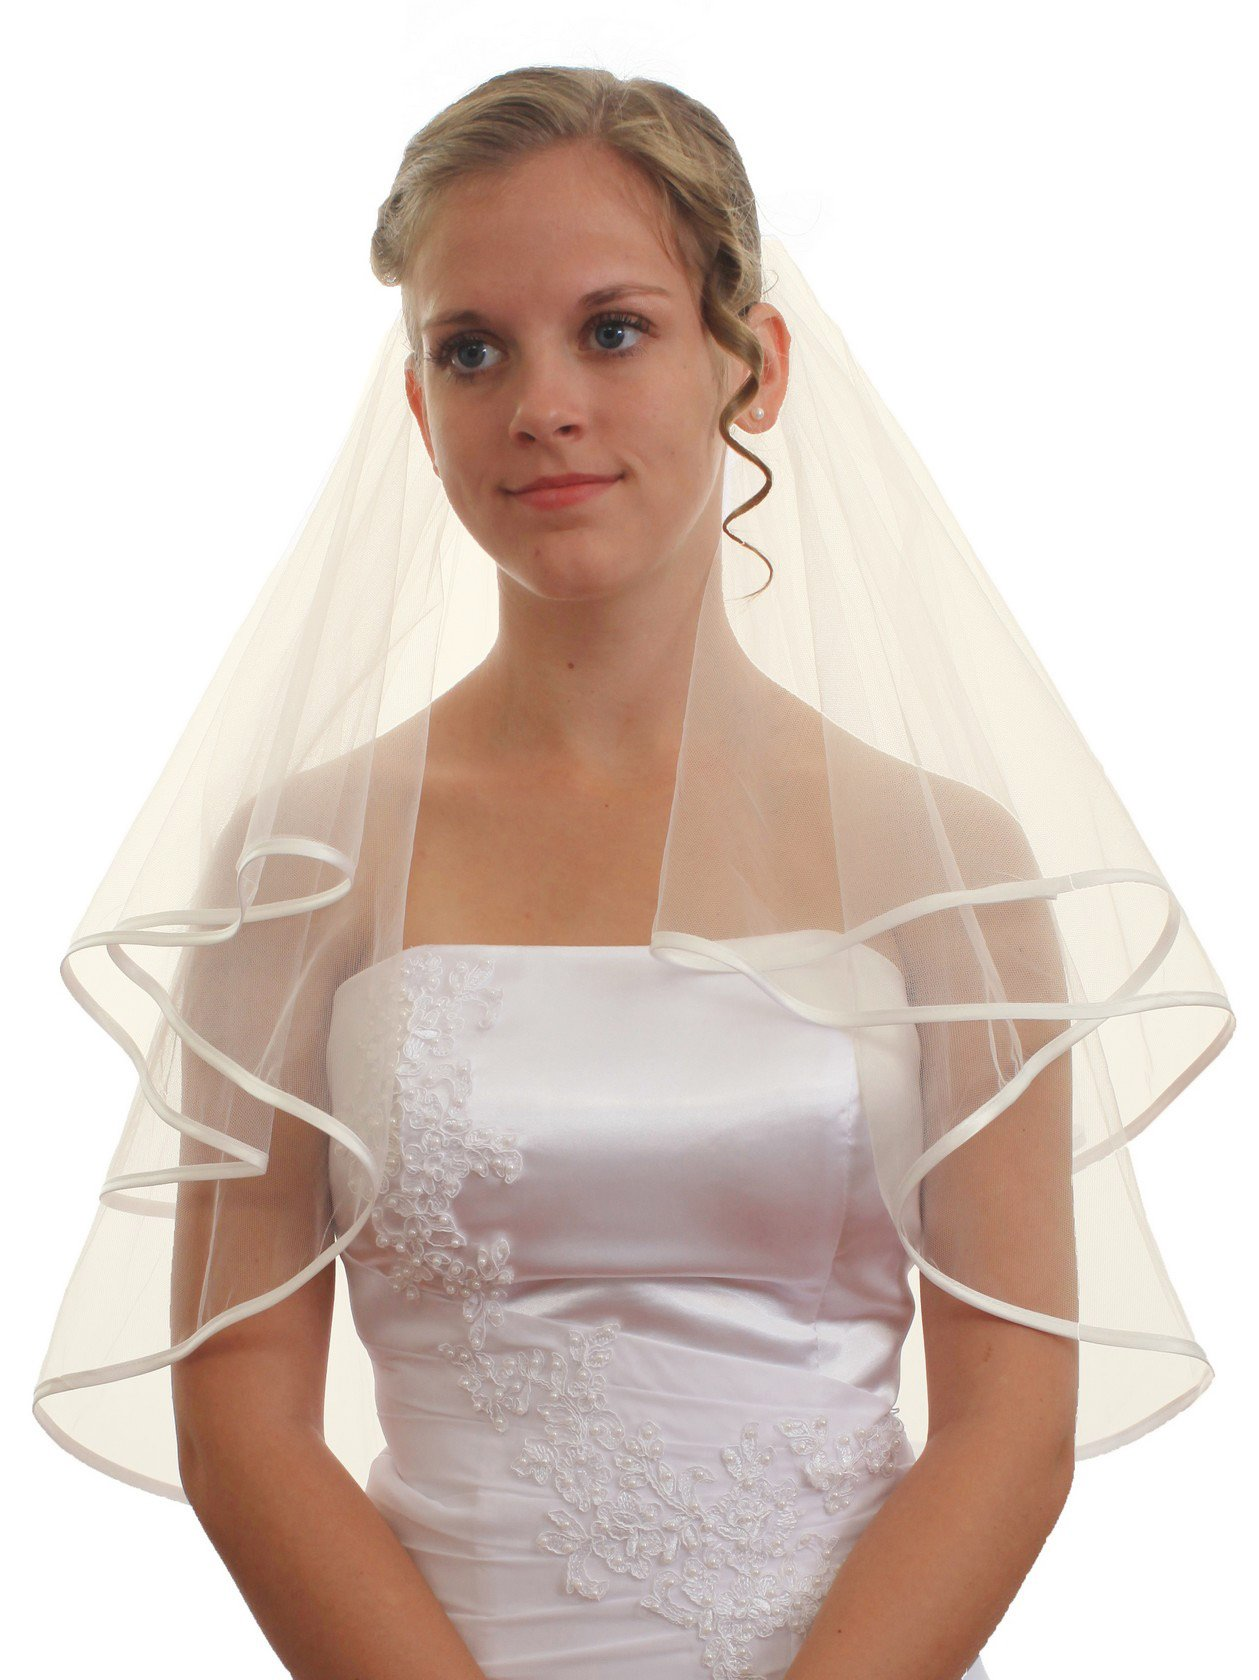 SparklyCrystal 2T 2 Tier 1/4'' Ribbon Edge Bridal Wedding Veil - Ivory Shoulder Length 25'' VC6B1